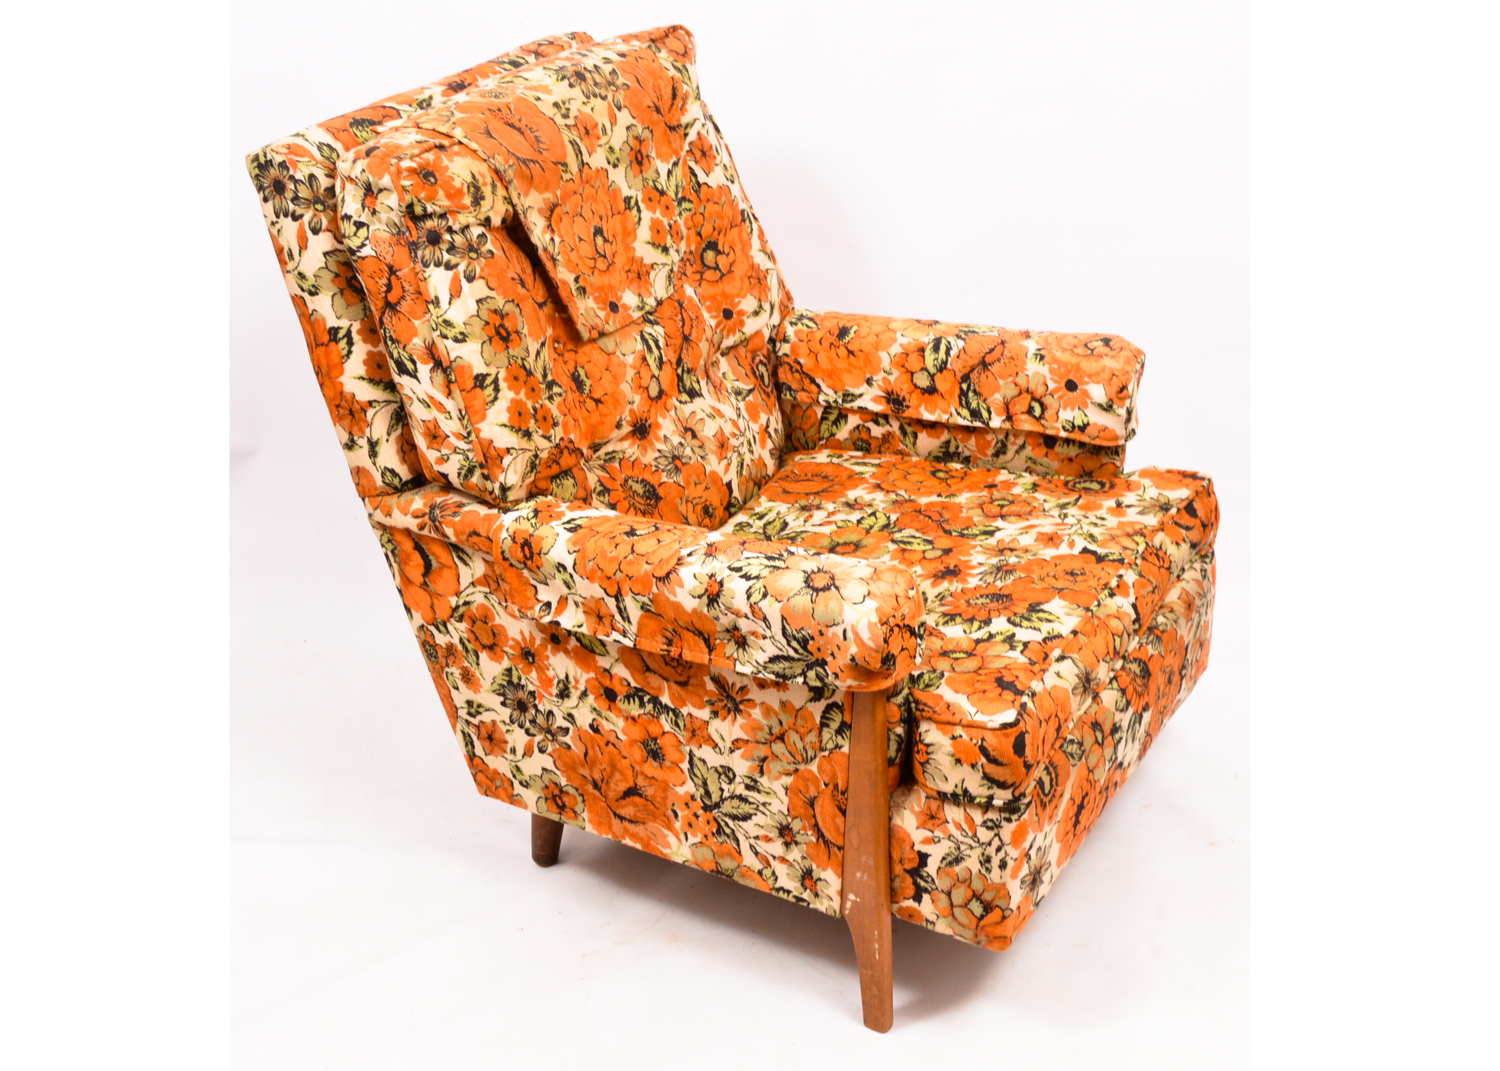 floral upholstered chair wheelchair left vintage mid century armchair by norwalk furniture ebth